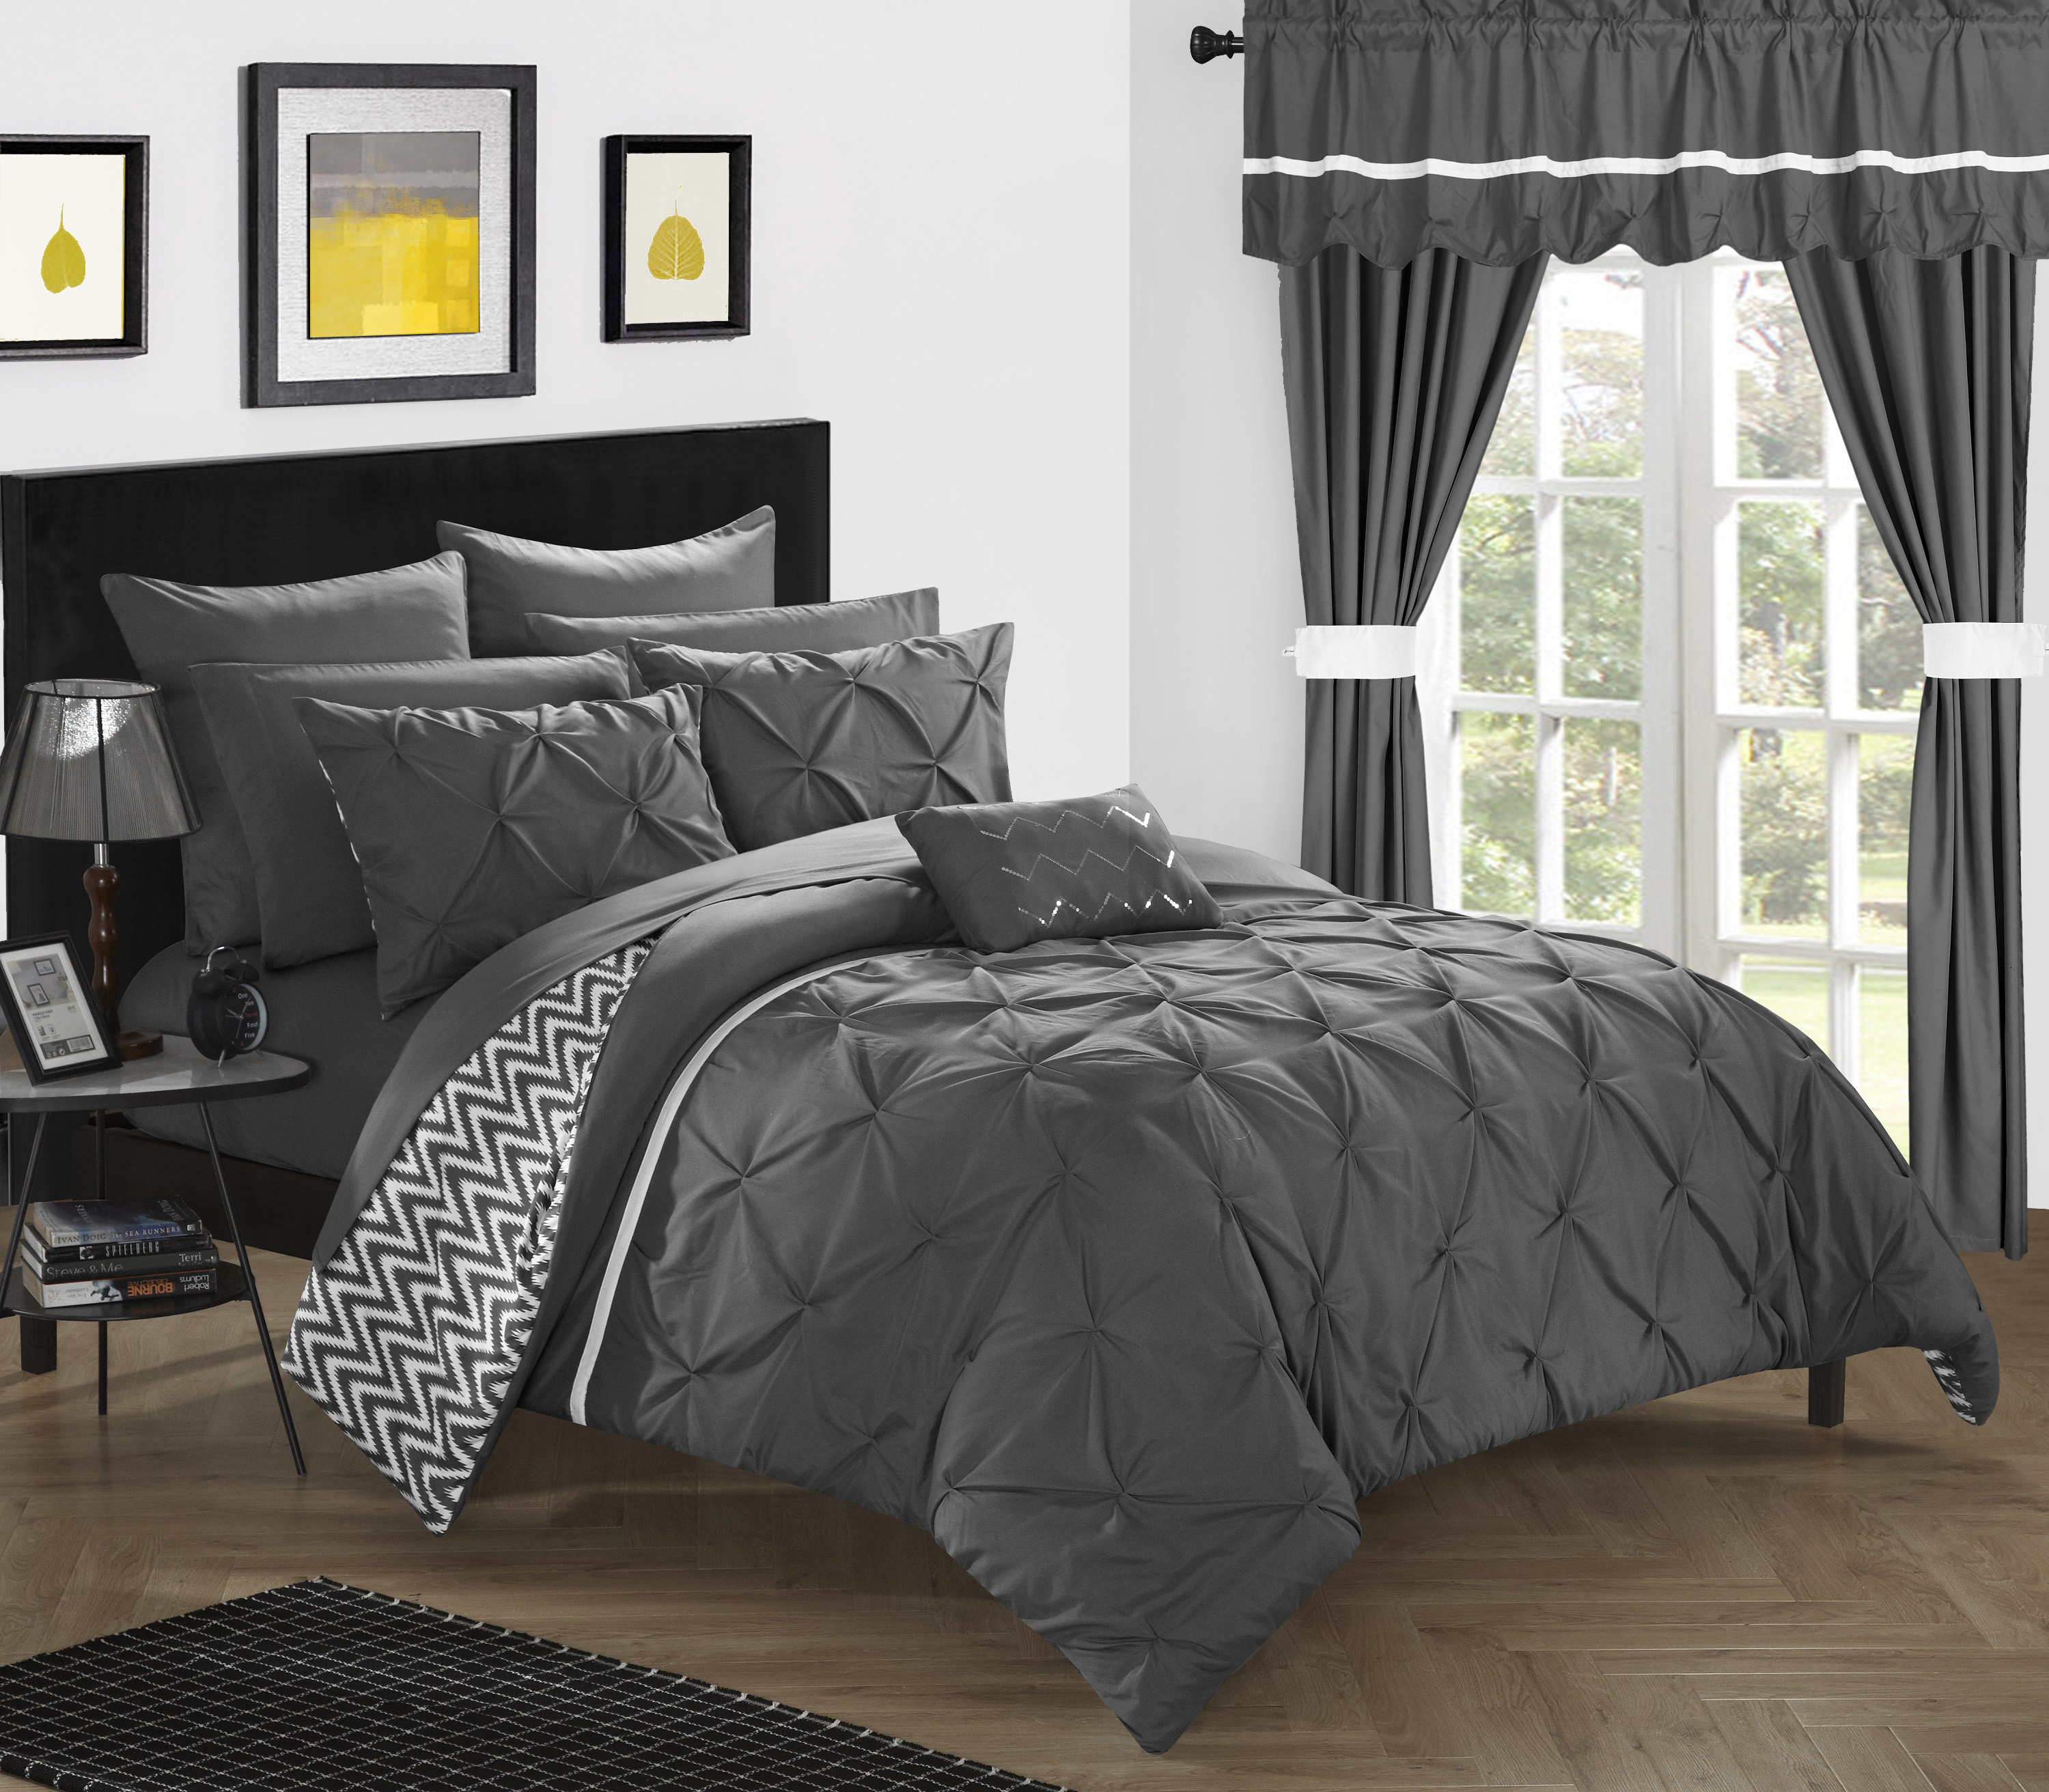 chic home 20piece potterville complete bed room in a bag super set pinch